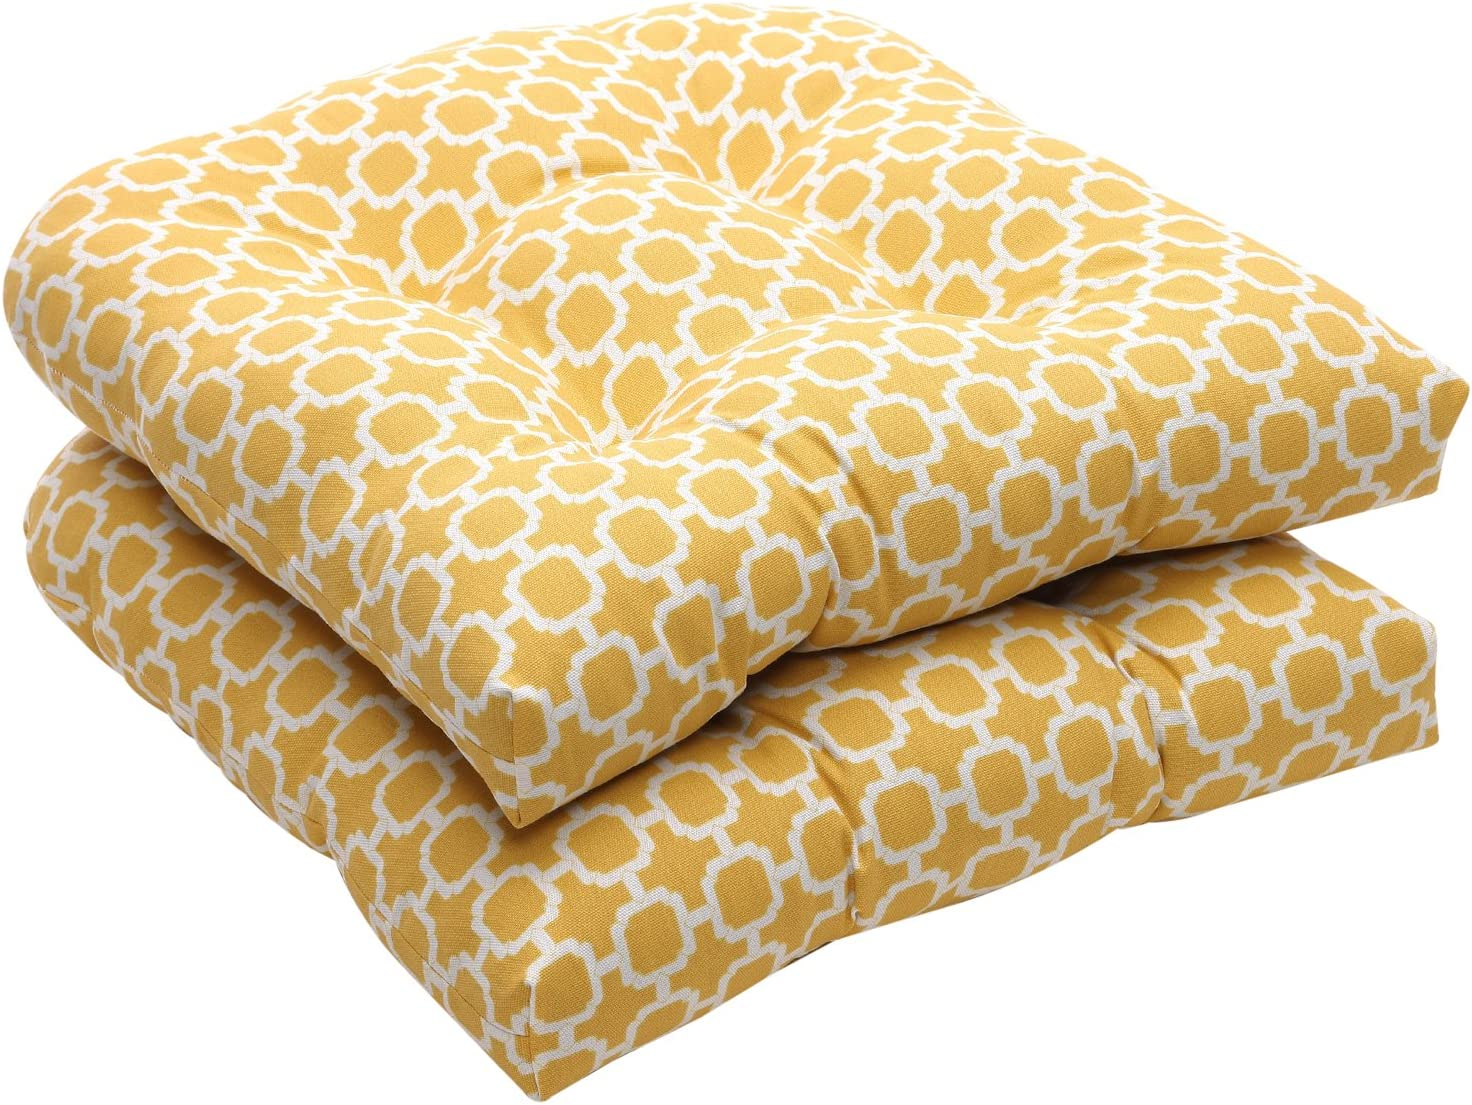 Pillow Perfect Indoor/Outdoor Yellow/White Geometric Wicker Seat Cushions, 2-Pack